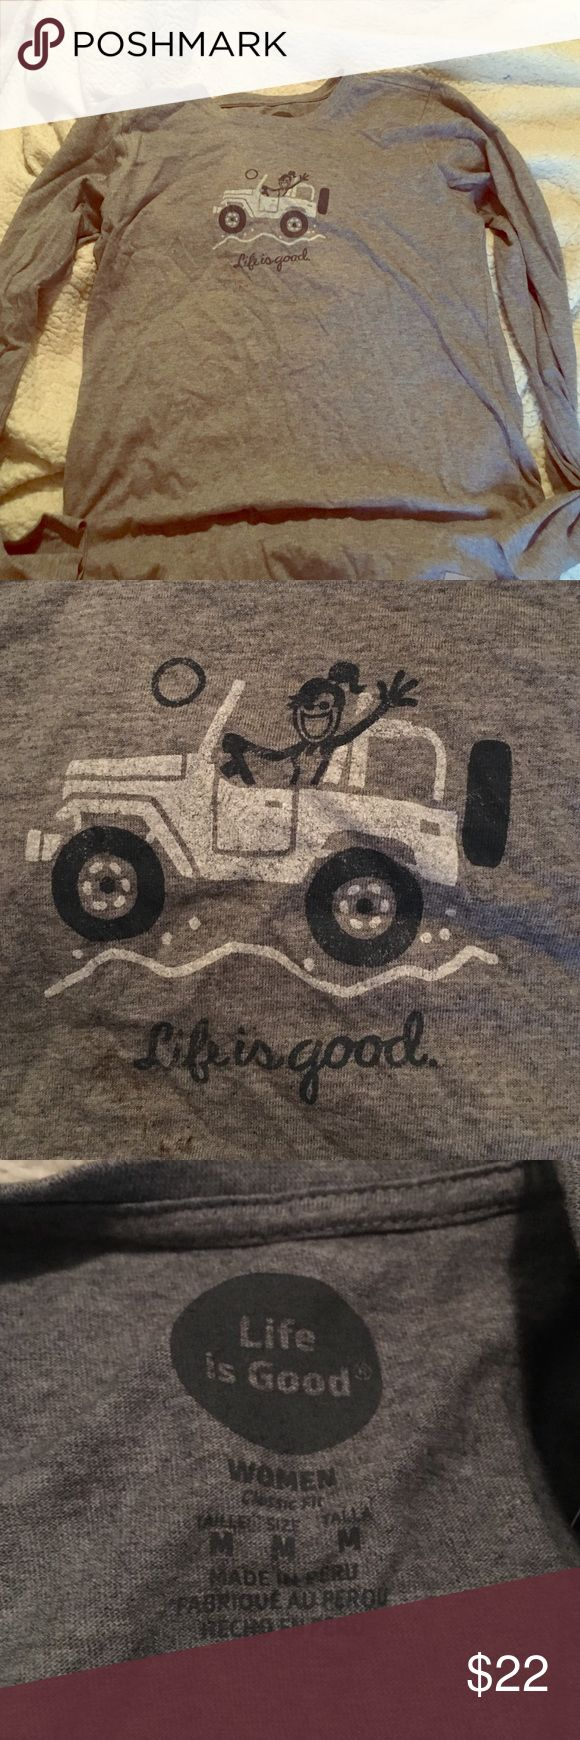 Life is good jeep shirt! Women's medium life is good long sleeve tshirt never been worn! Given as a gift and not the right size for me Life is Good Tops Tees - Long Sleeve